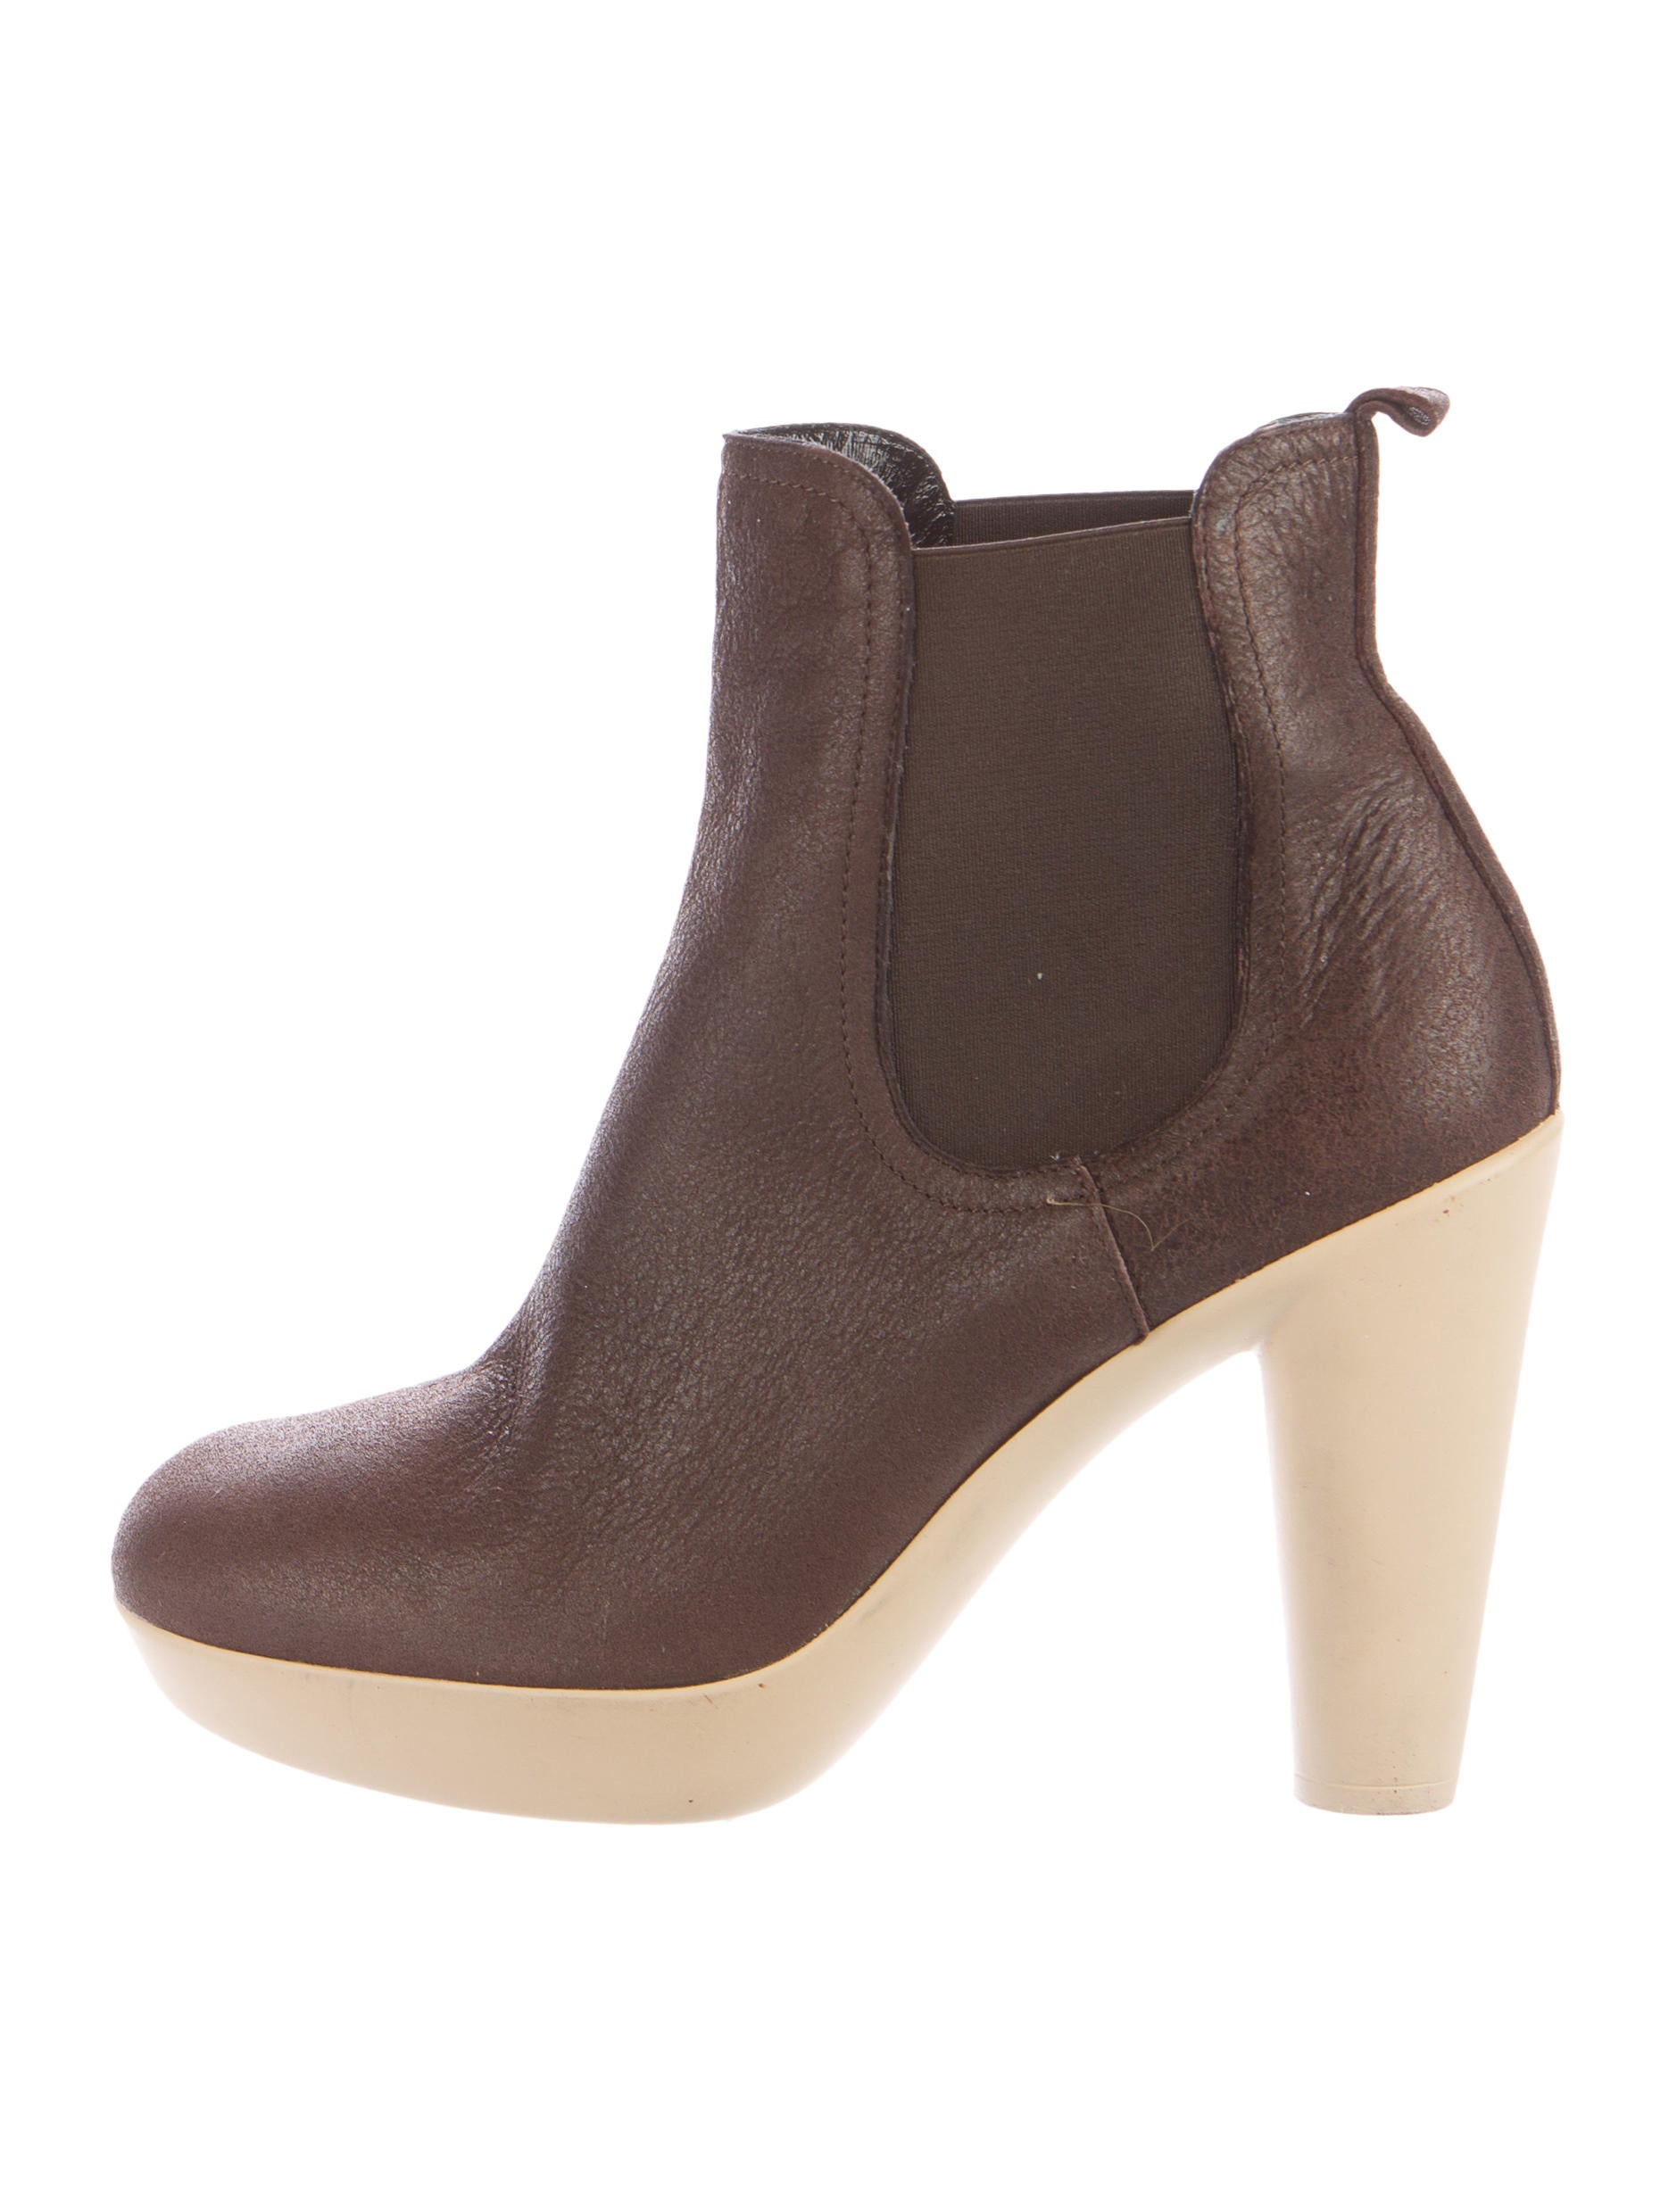 lanvin suede ankle boots shoes lan55535 the realreal